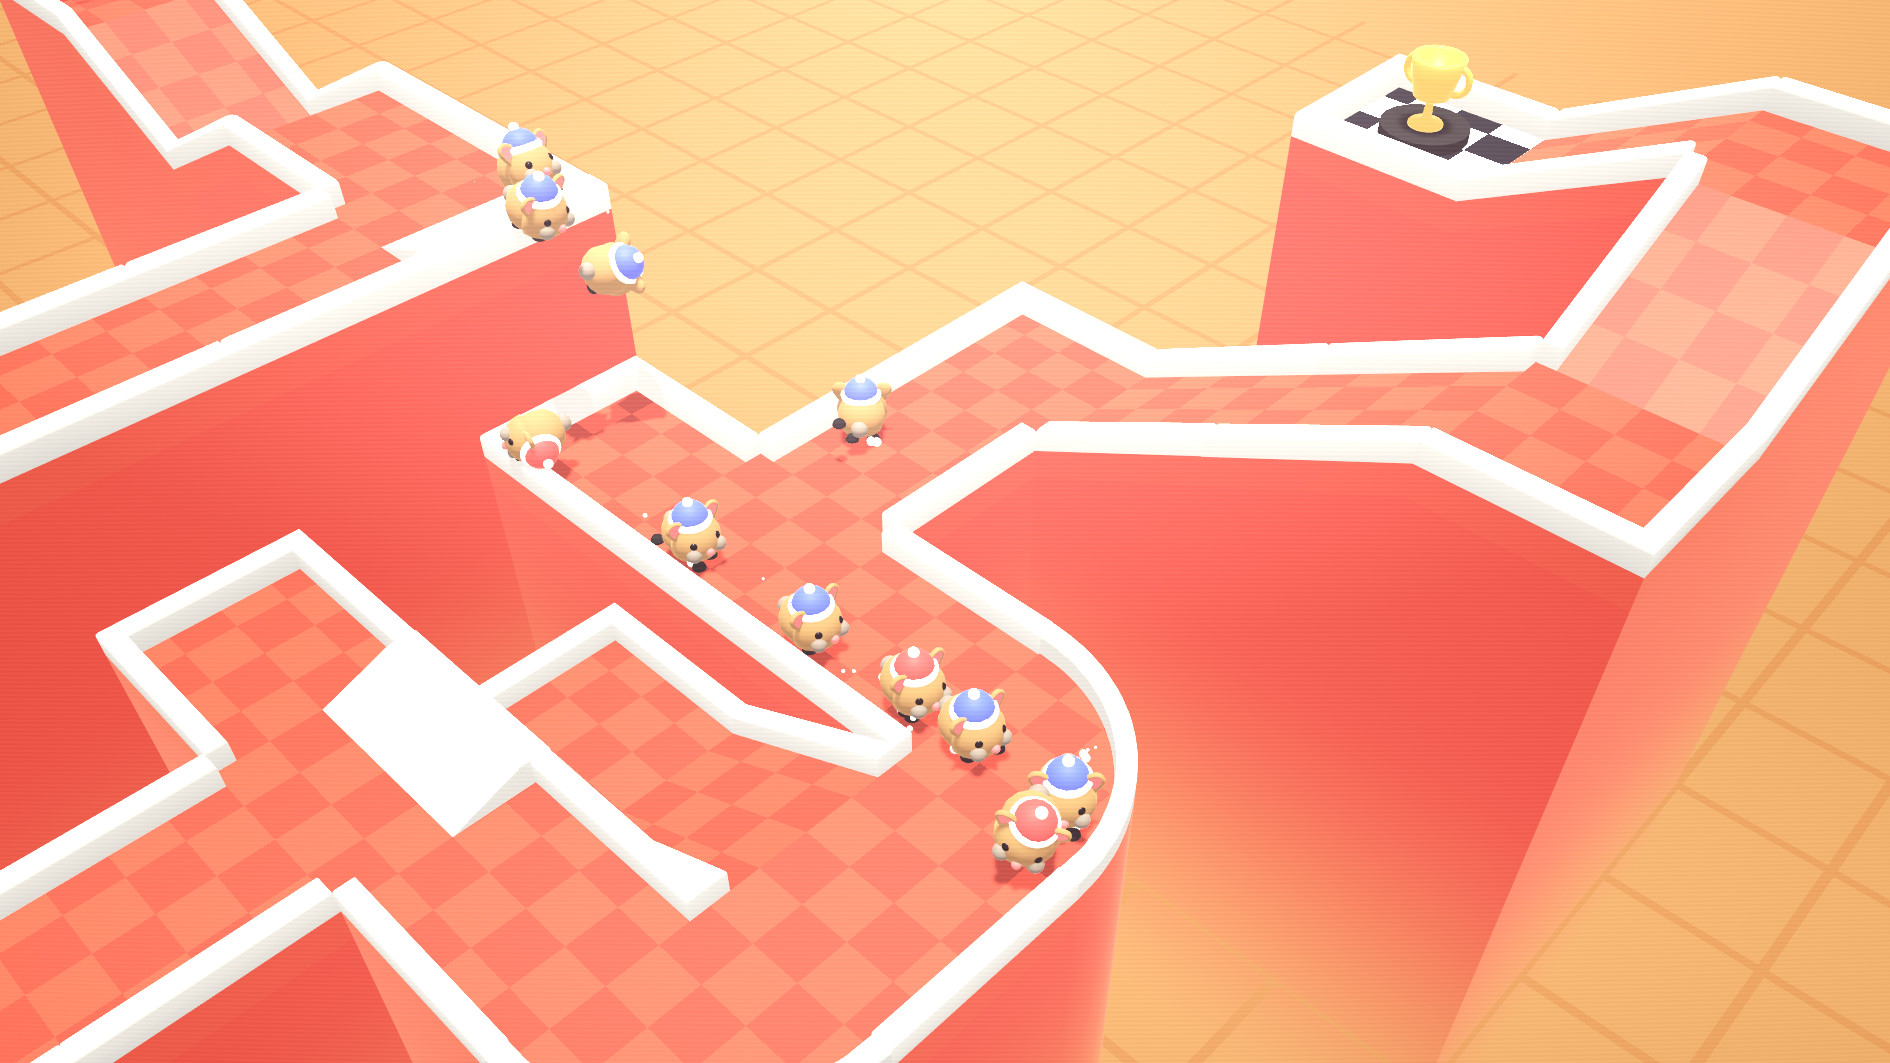 Build rodent racetracks and bet on the outcome in Hamster All-Stars